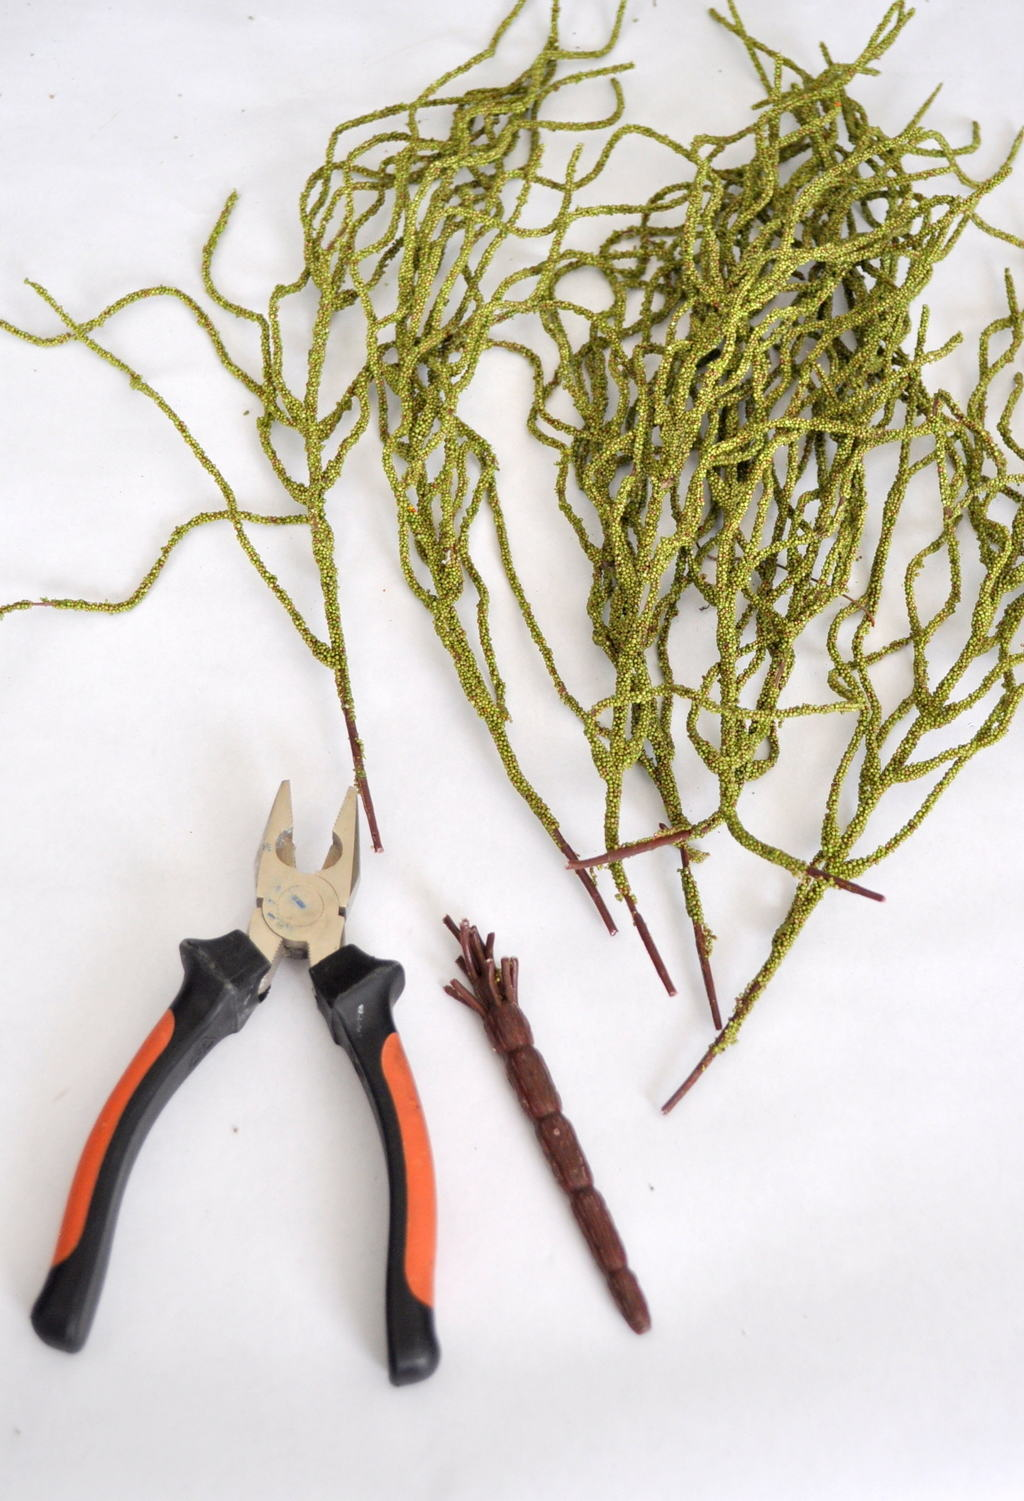 Cut stems away from branches for floral design madeinaday.com